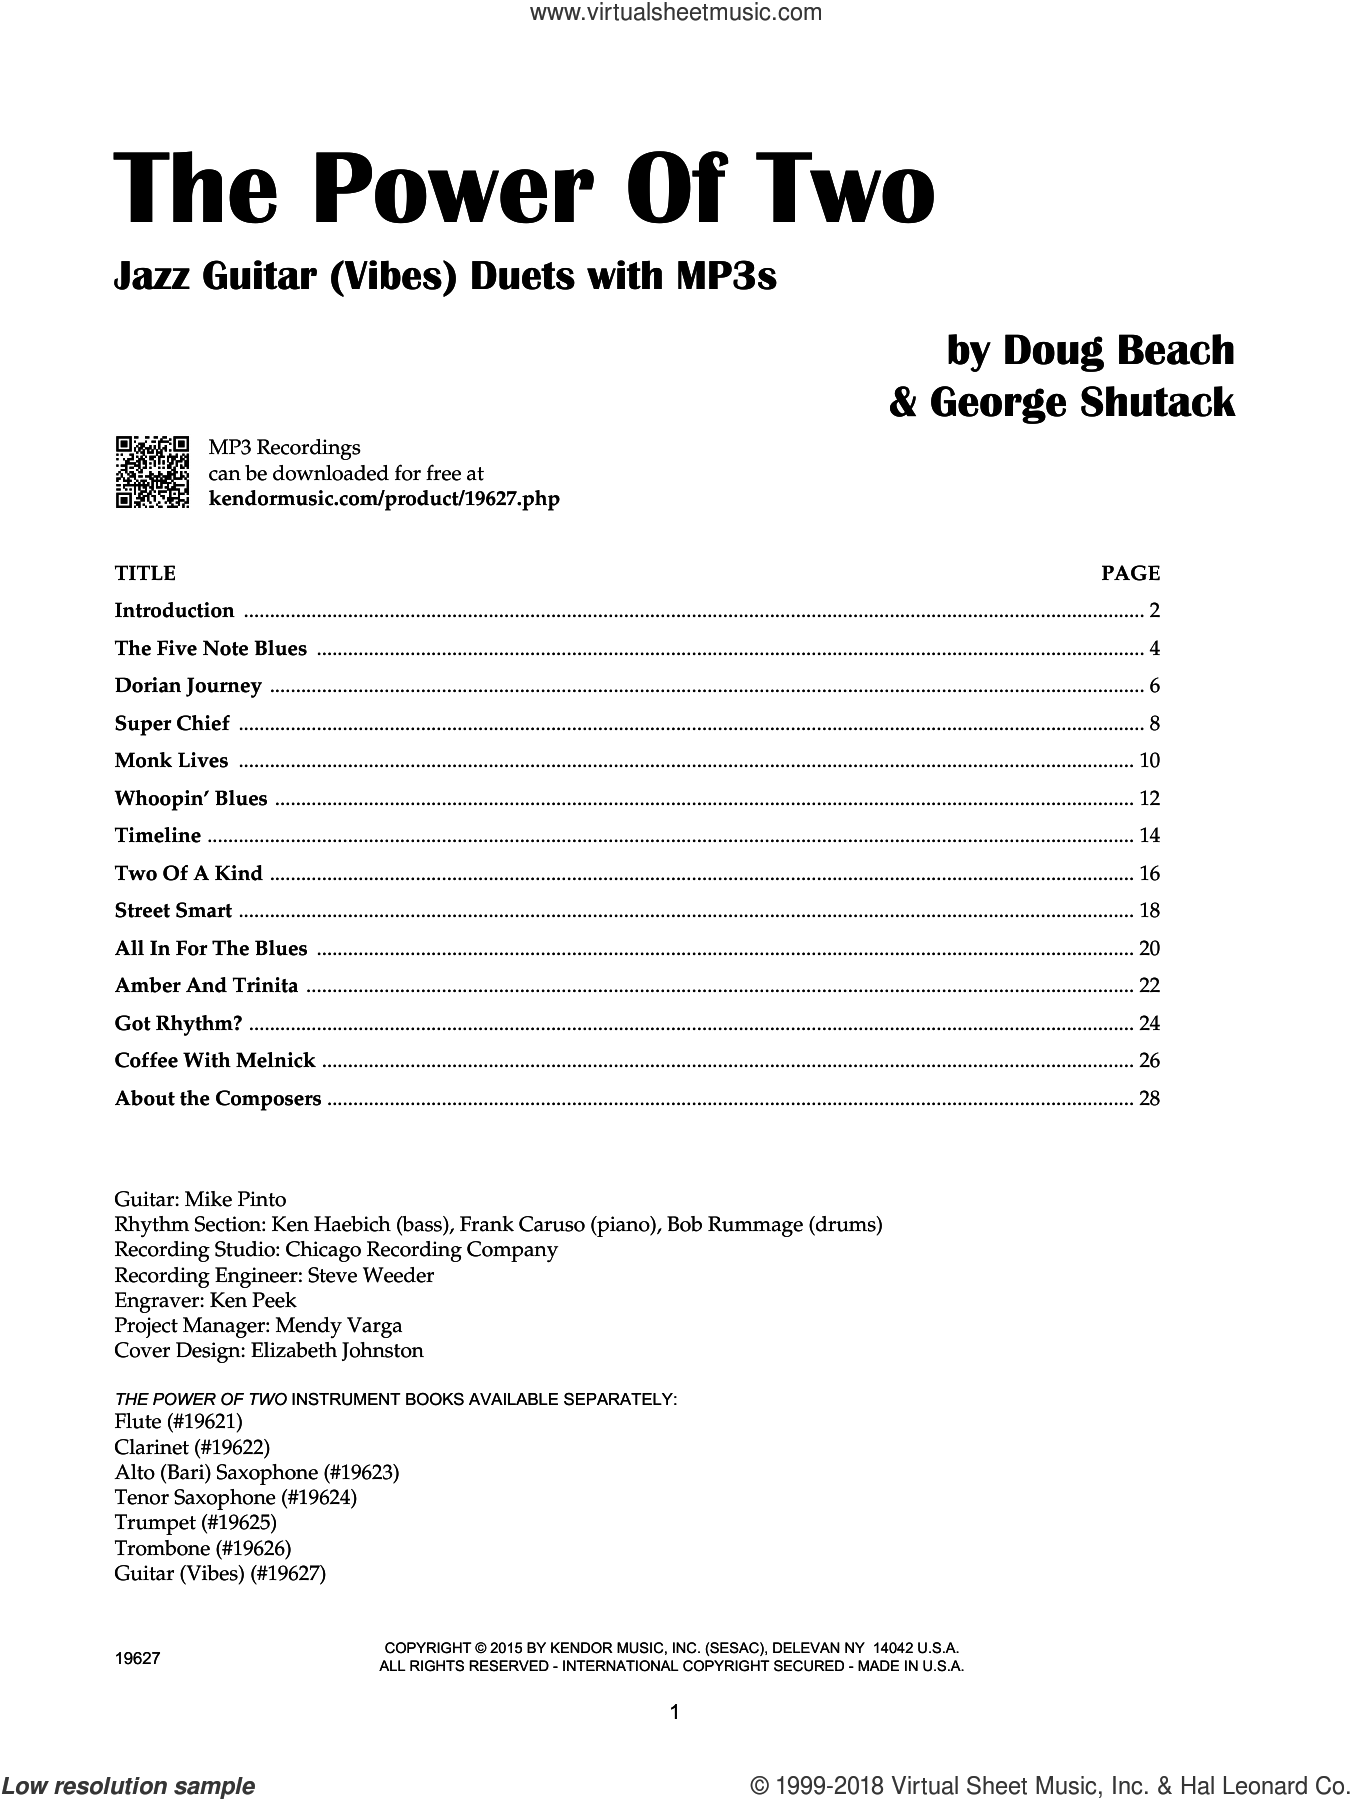 The Power Of Two - Guitar (Vibes) sheet music for percussions by Doug Beach and George Shutack. Score Image Preview.